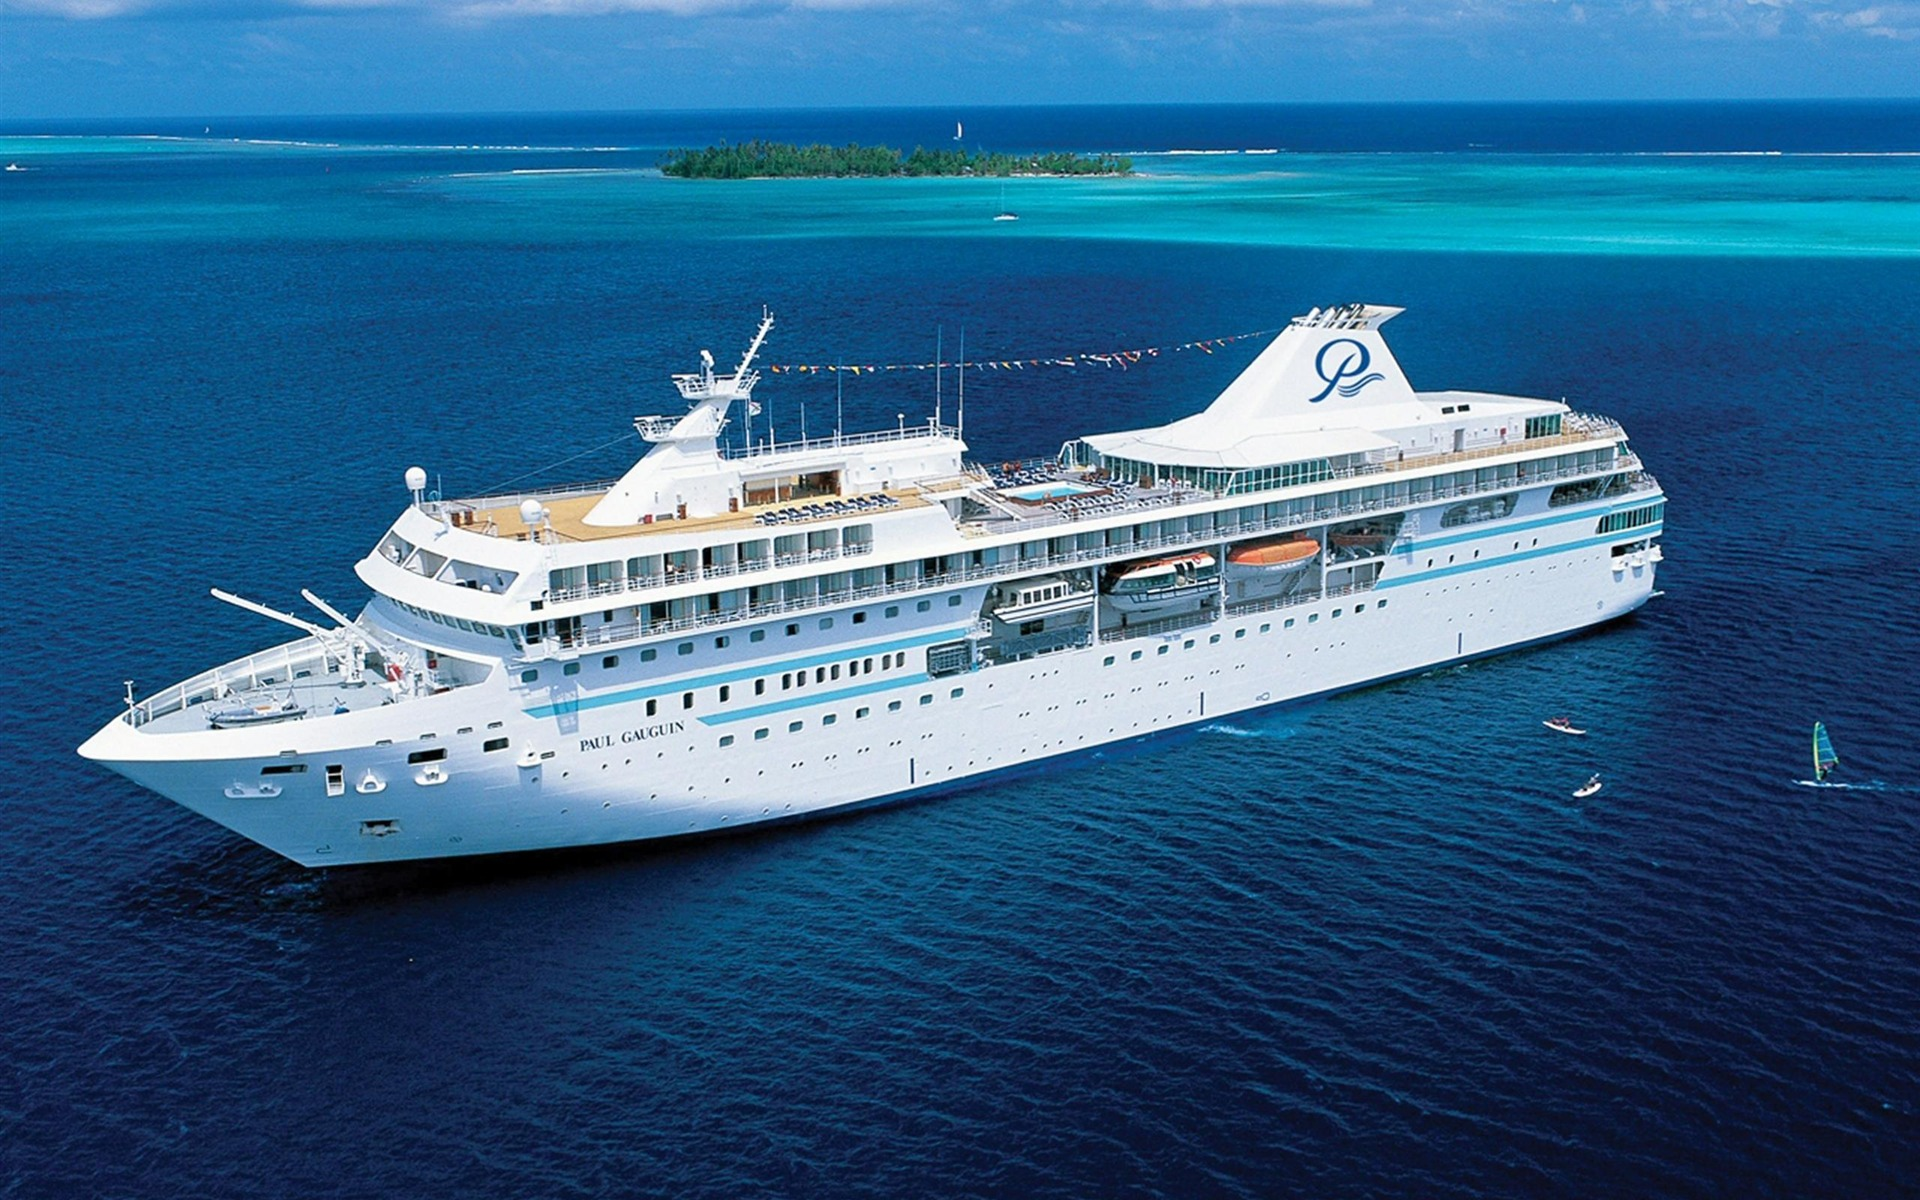 Cruise Ship Wallpaper Posted By Samantha Anderson